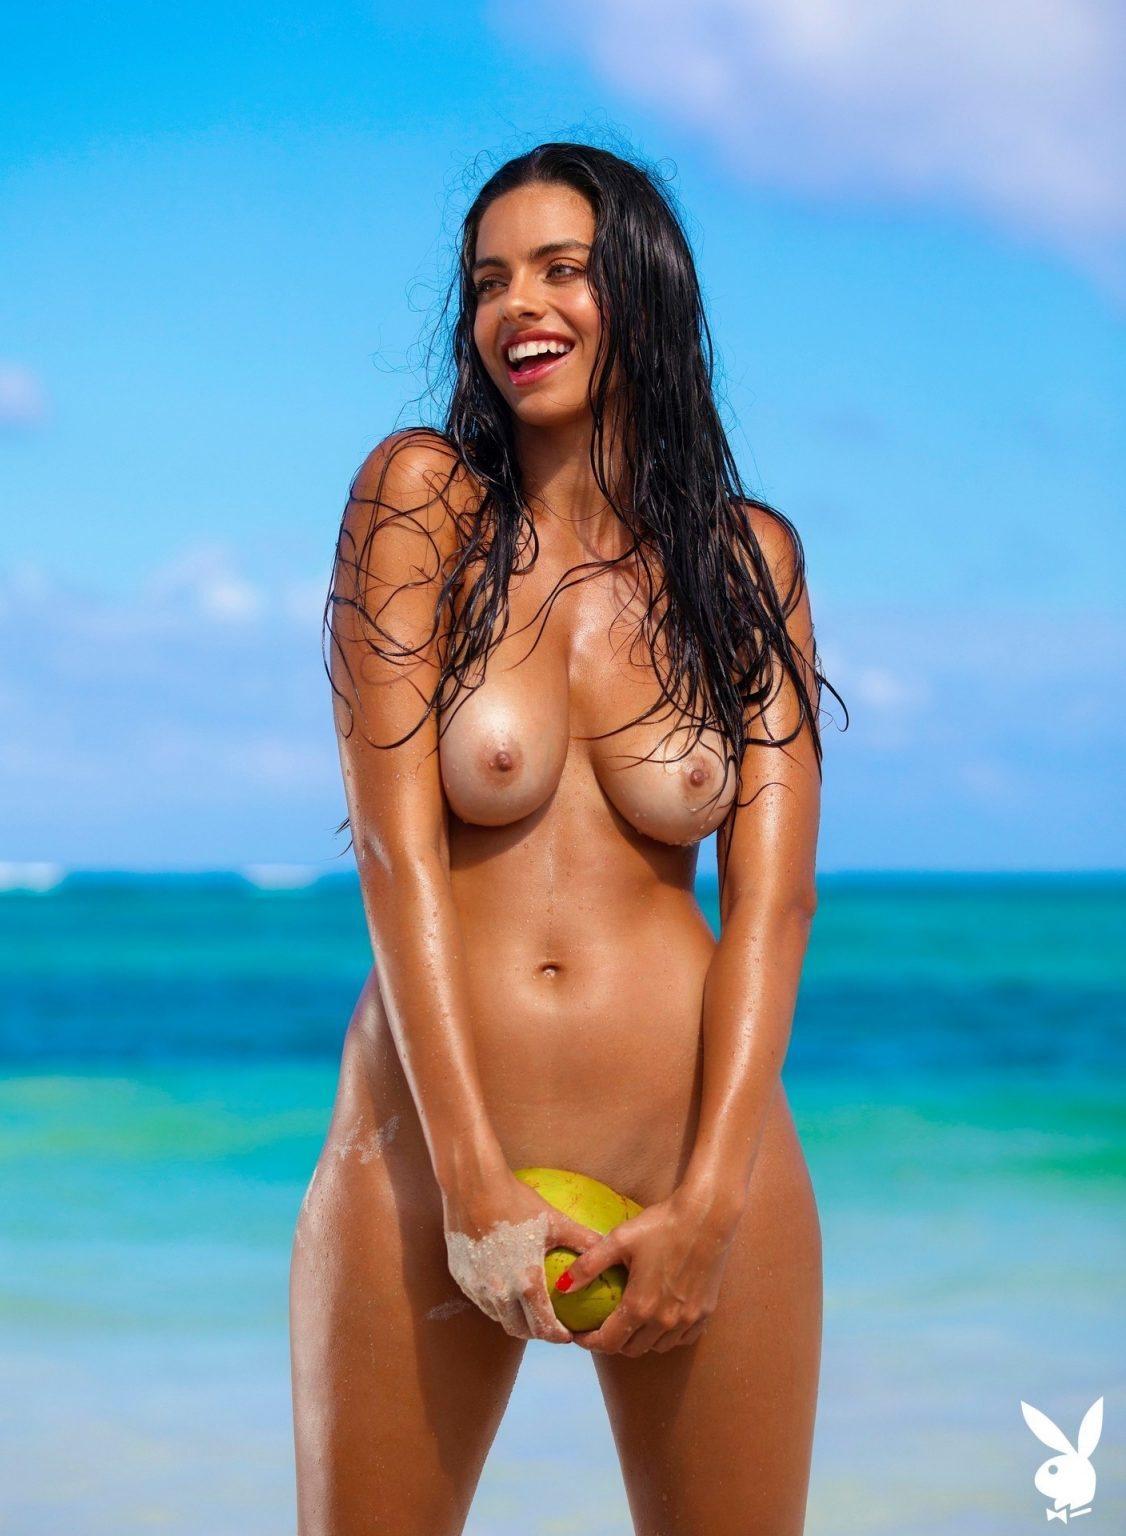 Priscilla-Huggins-Nude-Content-By-Ana-Dias-The-Fappening-Pro-22-1126x1536